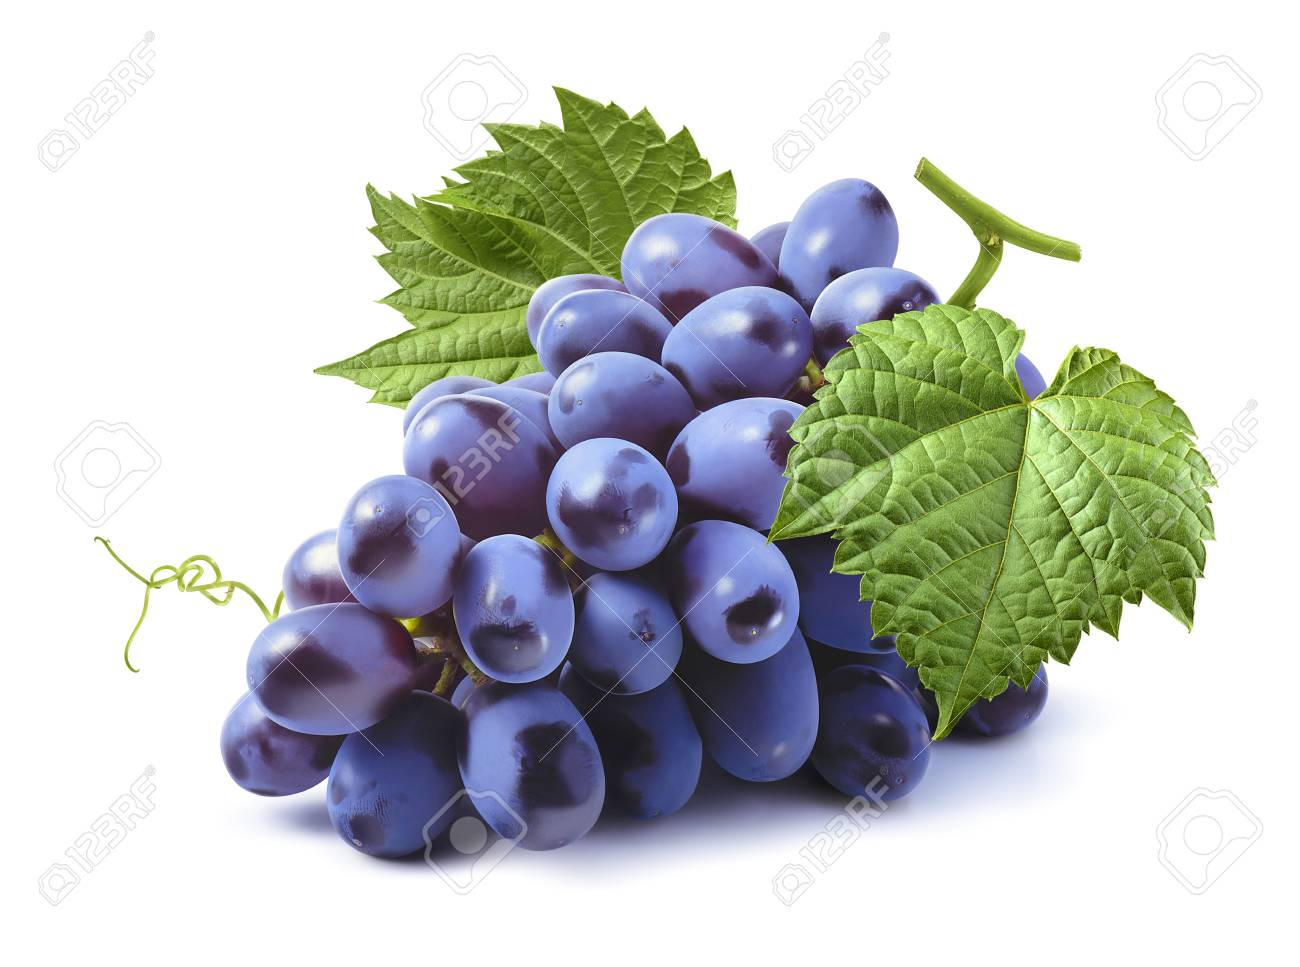 Blue grapes bunch isolated on white background as package design element - 95622500